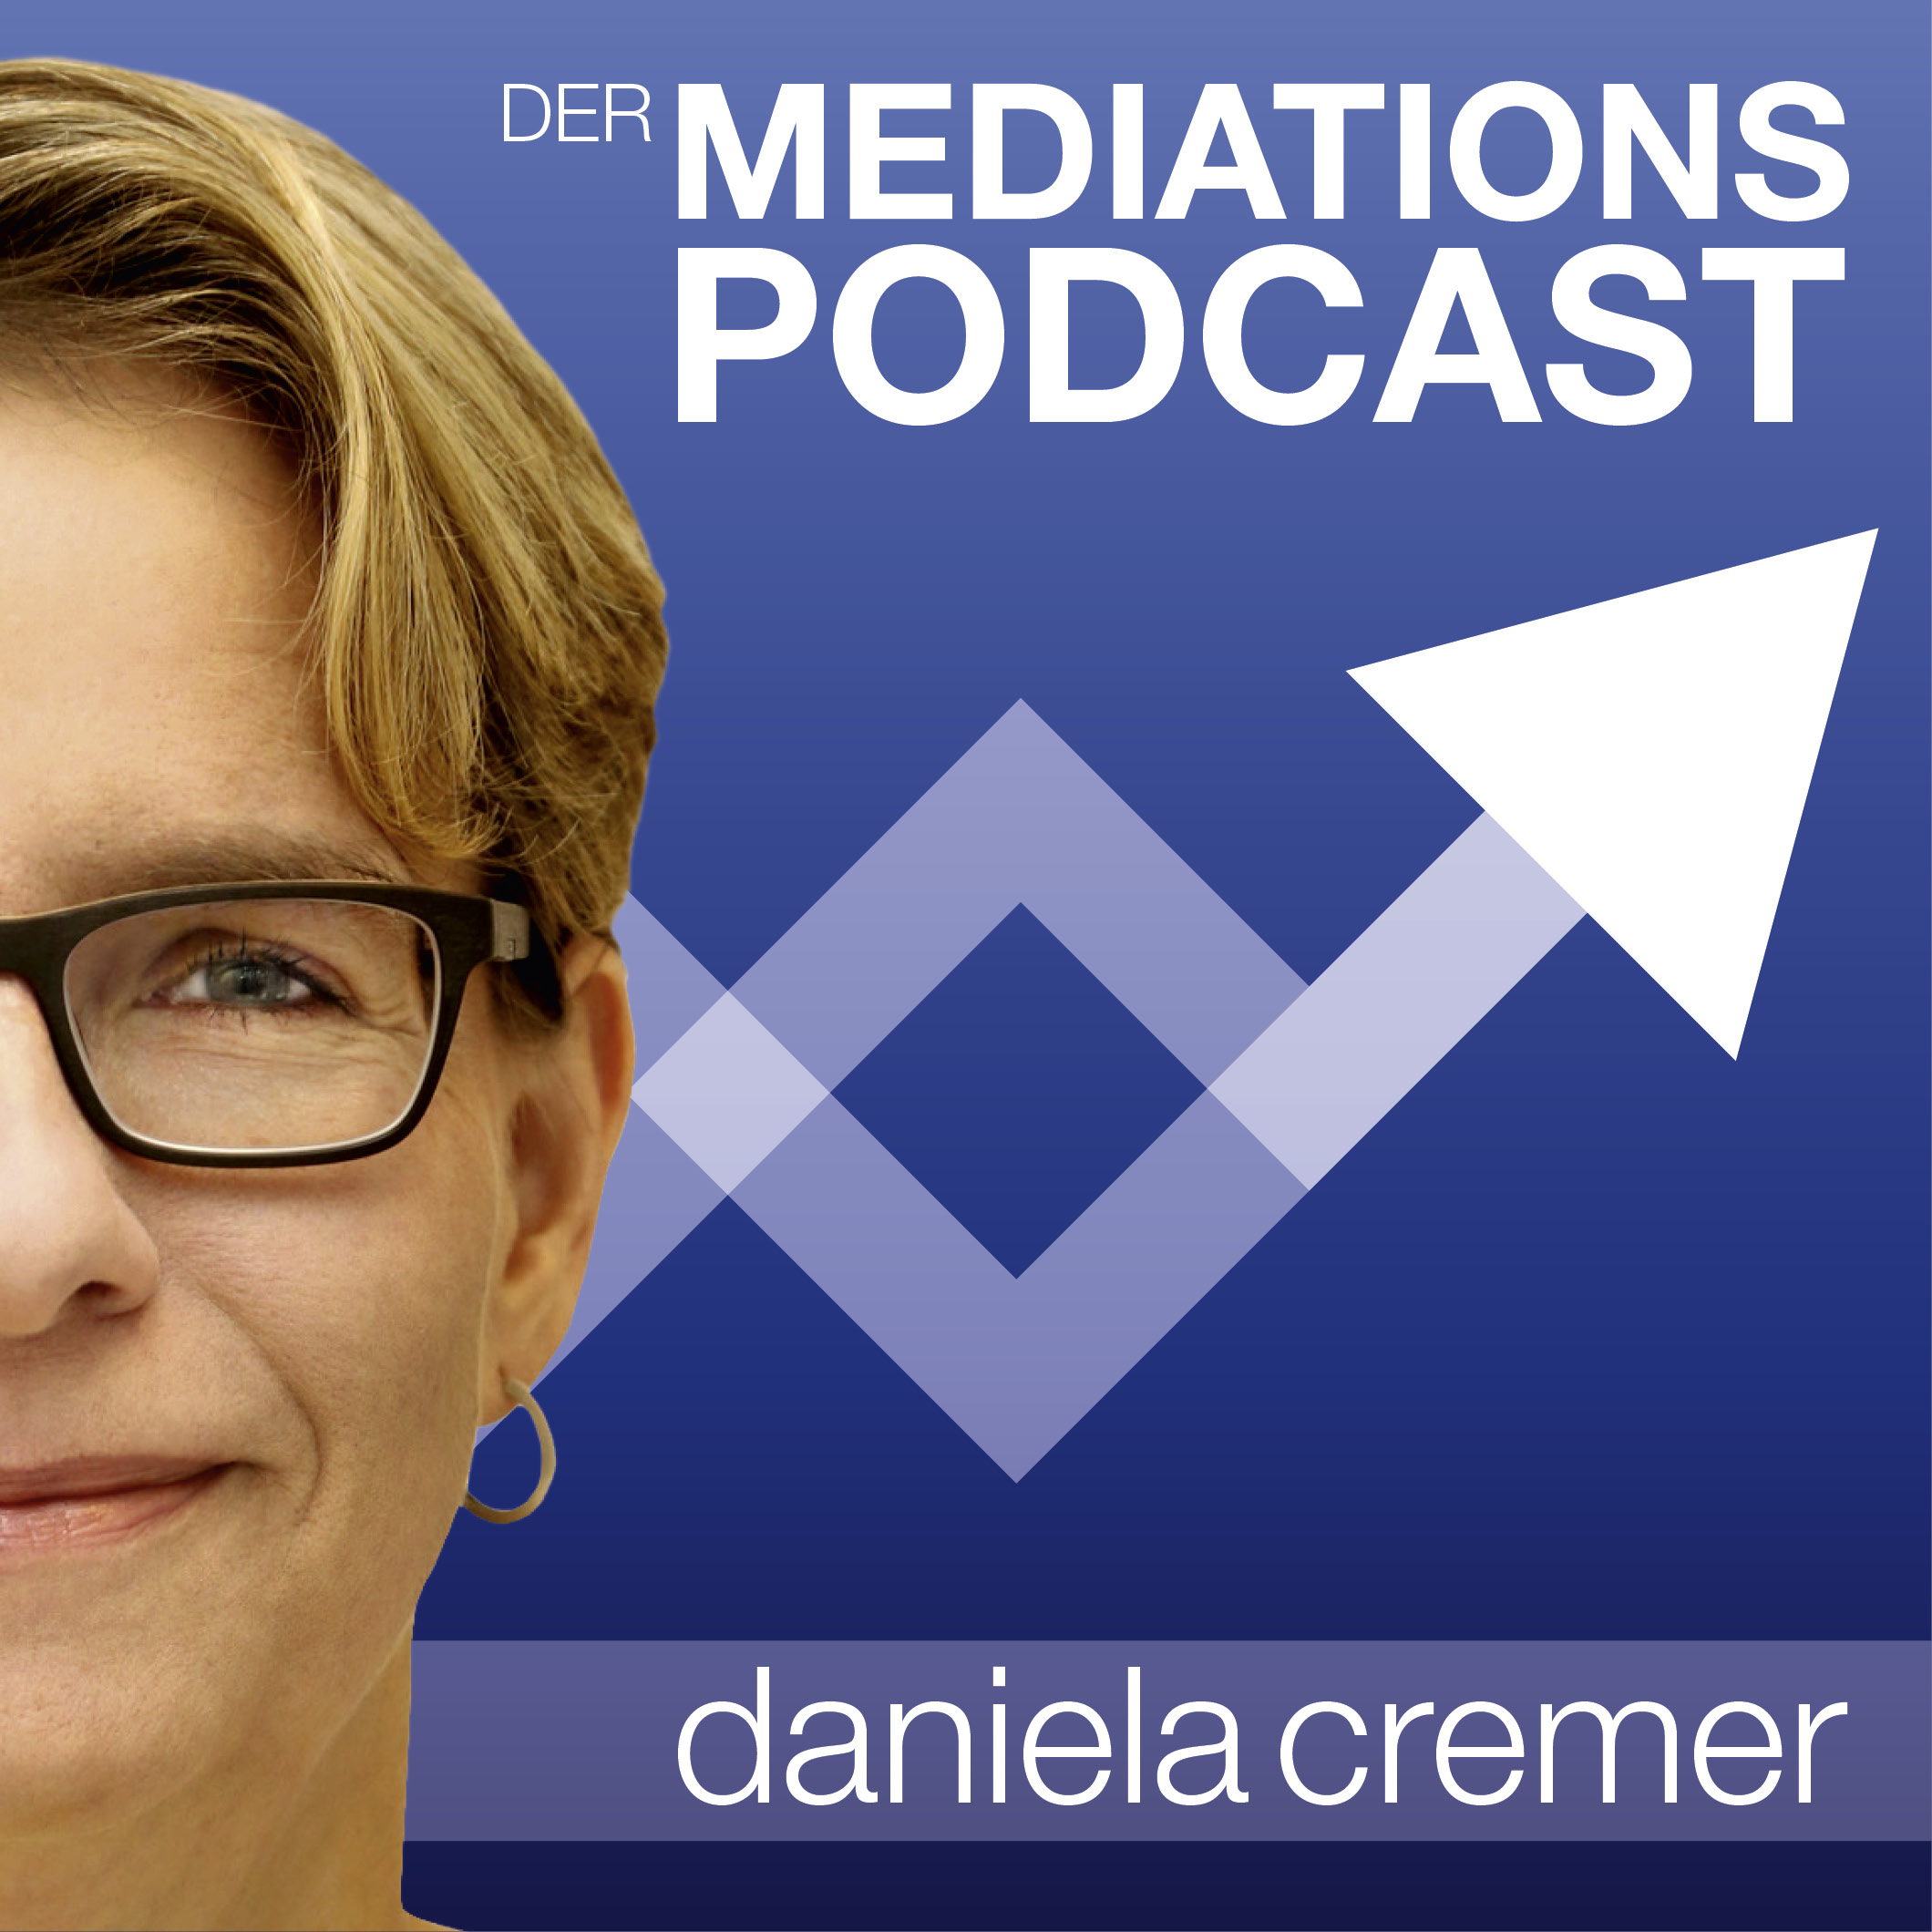 Mediationspodcast